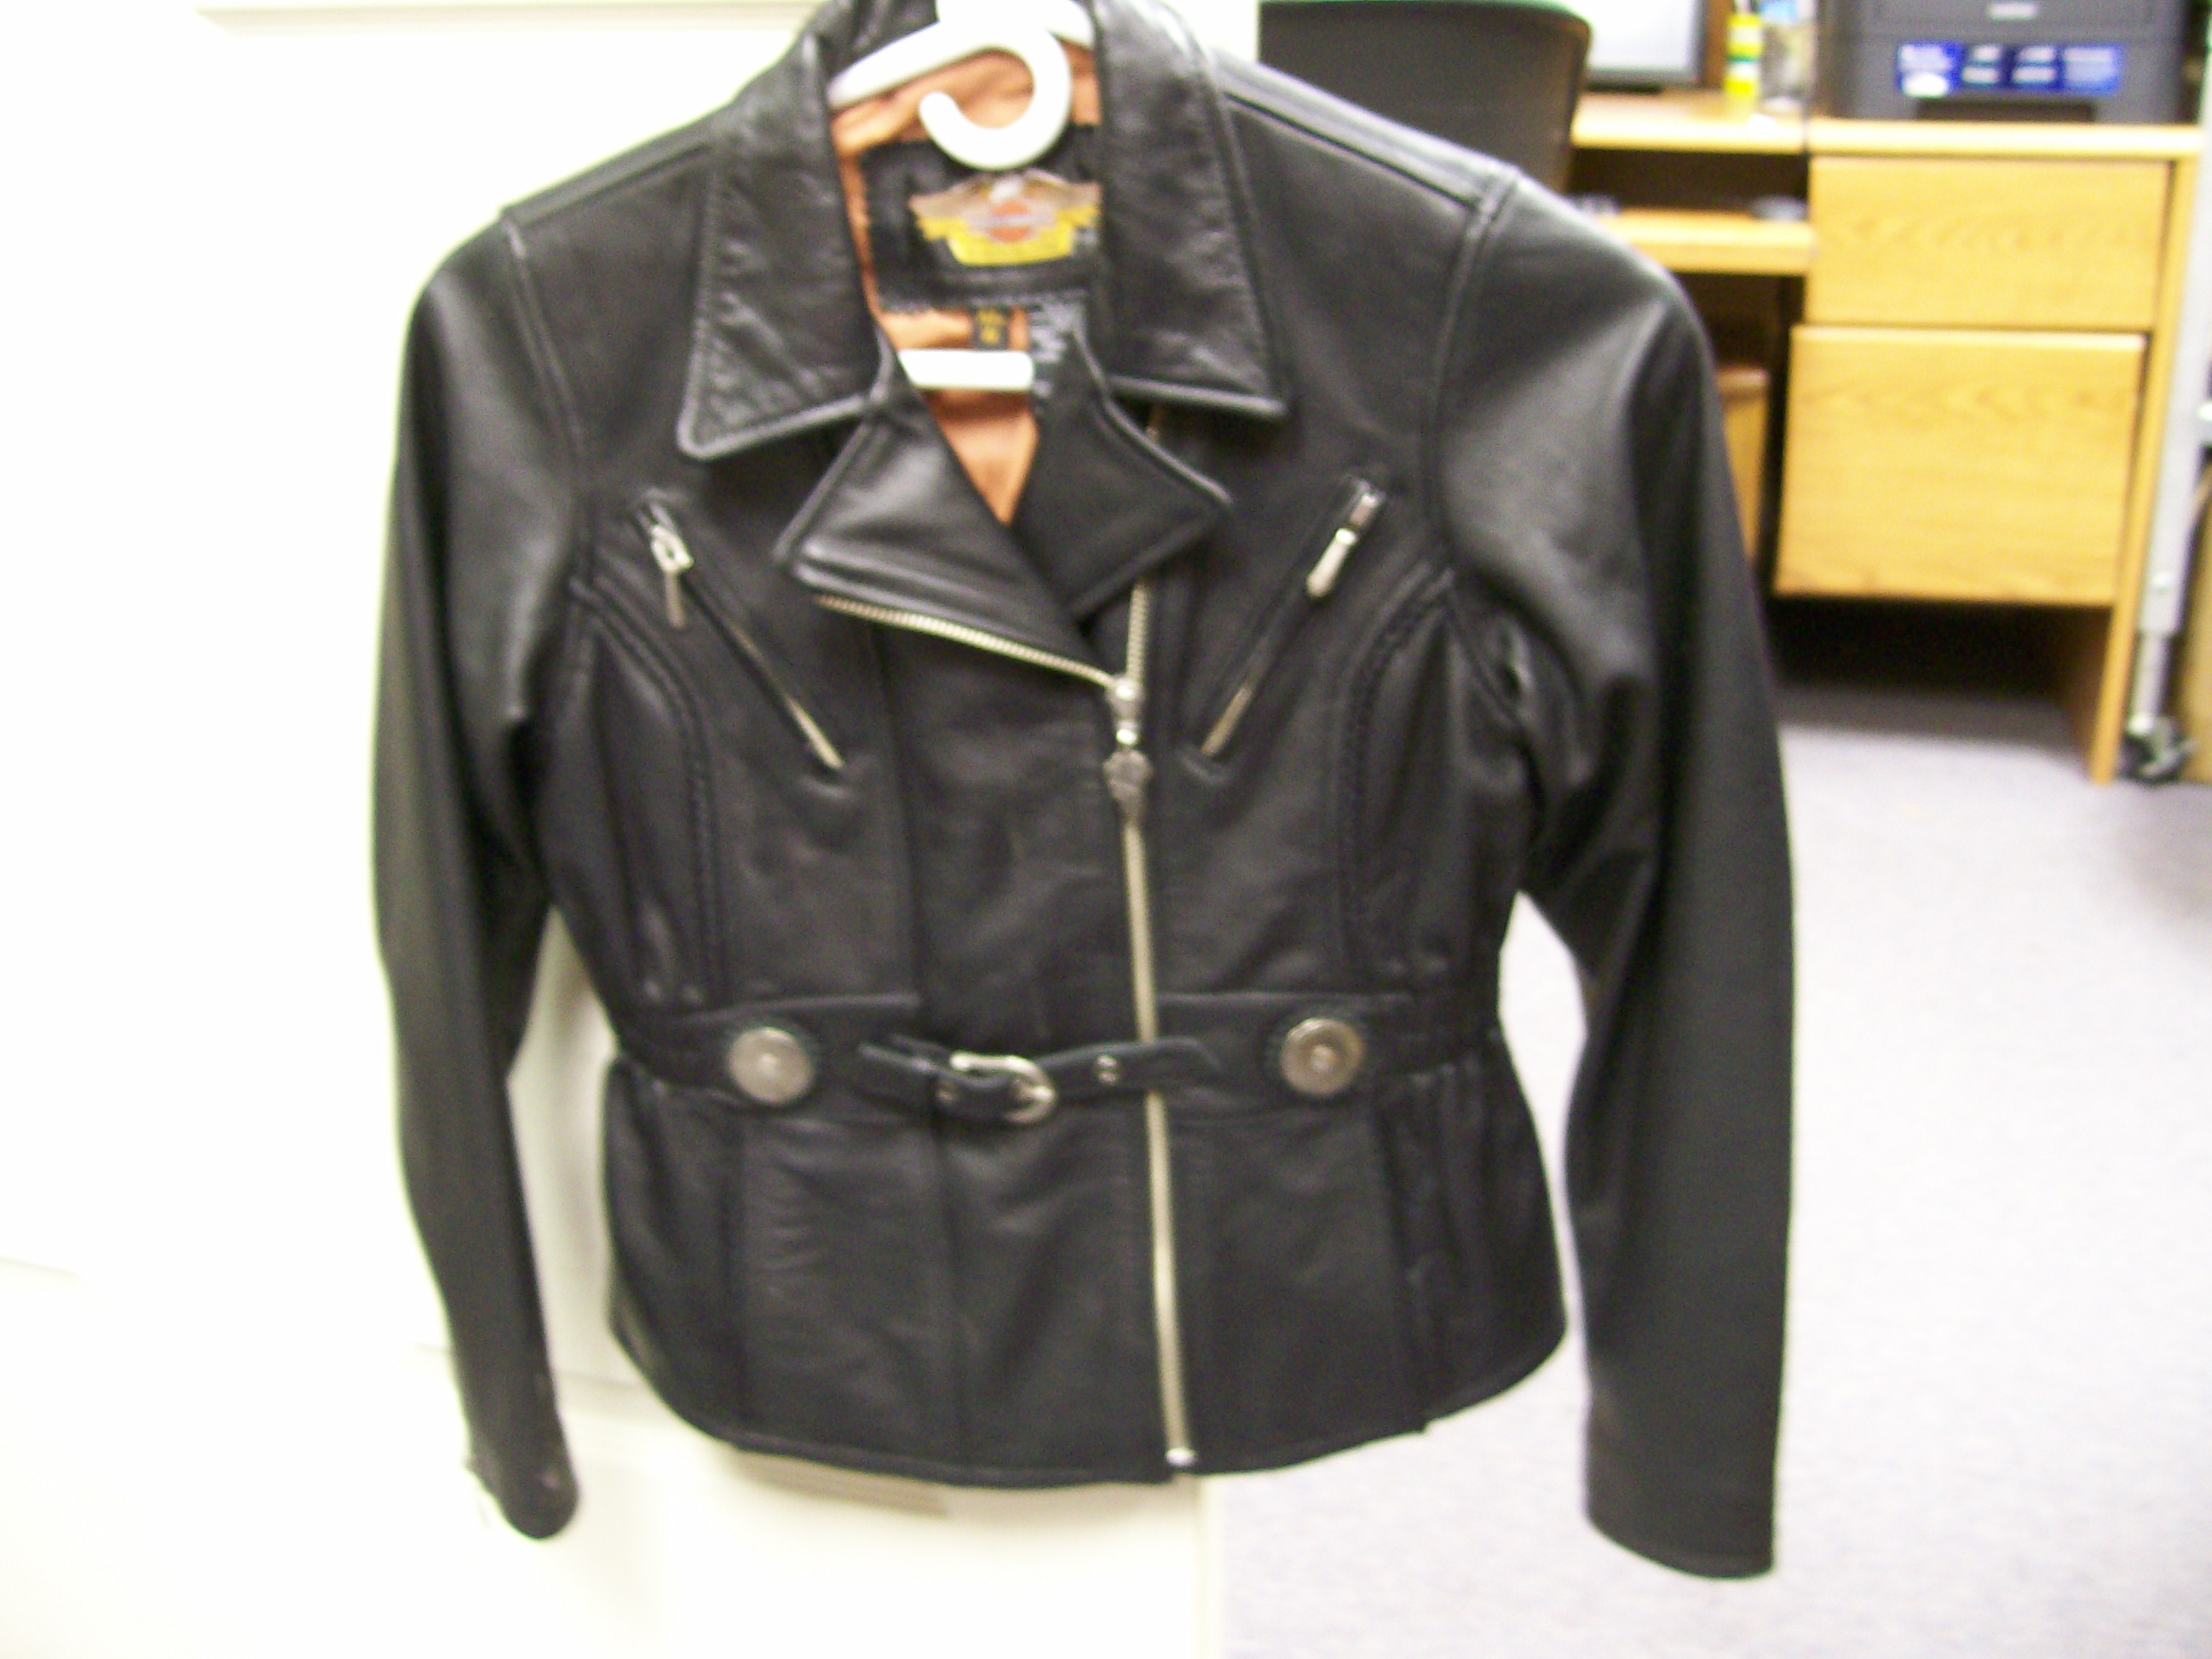 Harley Davidson Motorcycle Black Leather Biker Jacket Size Small